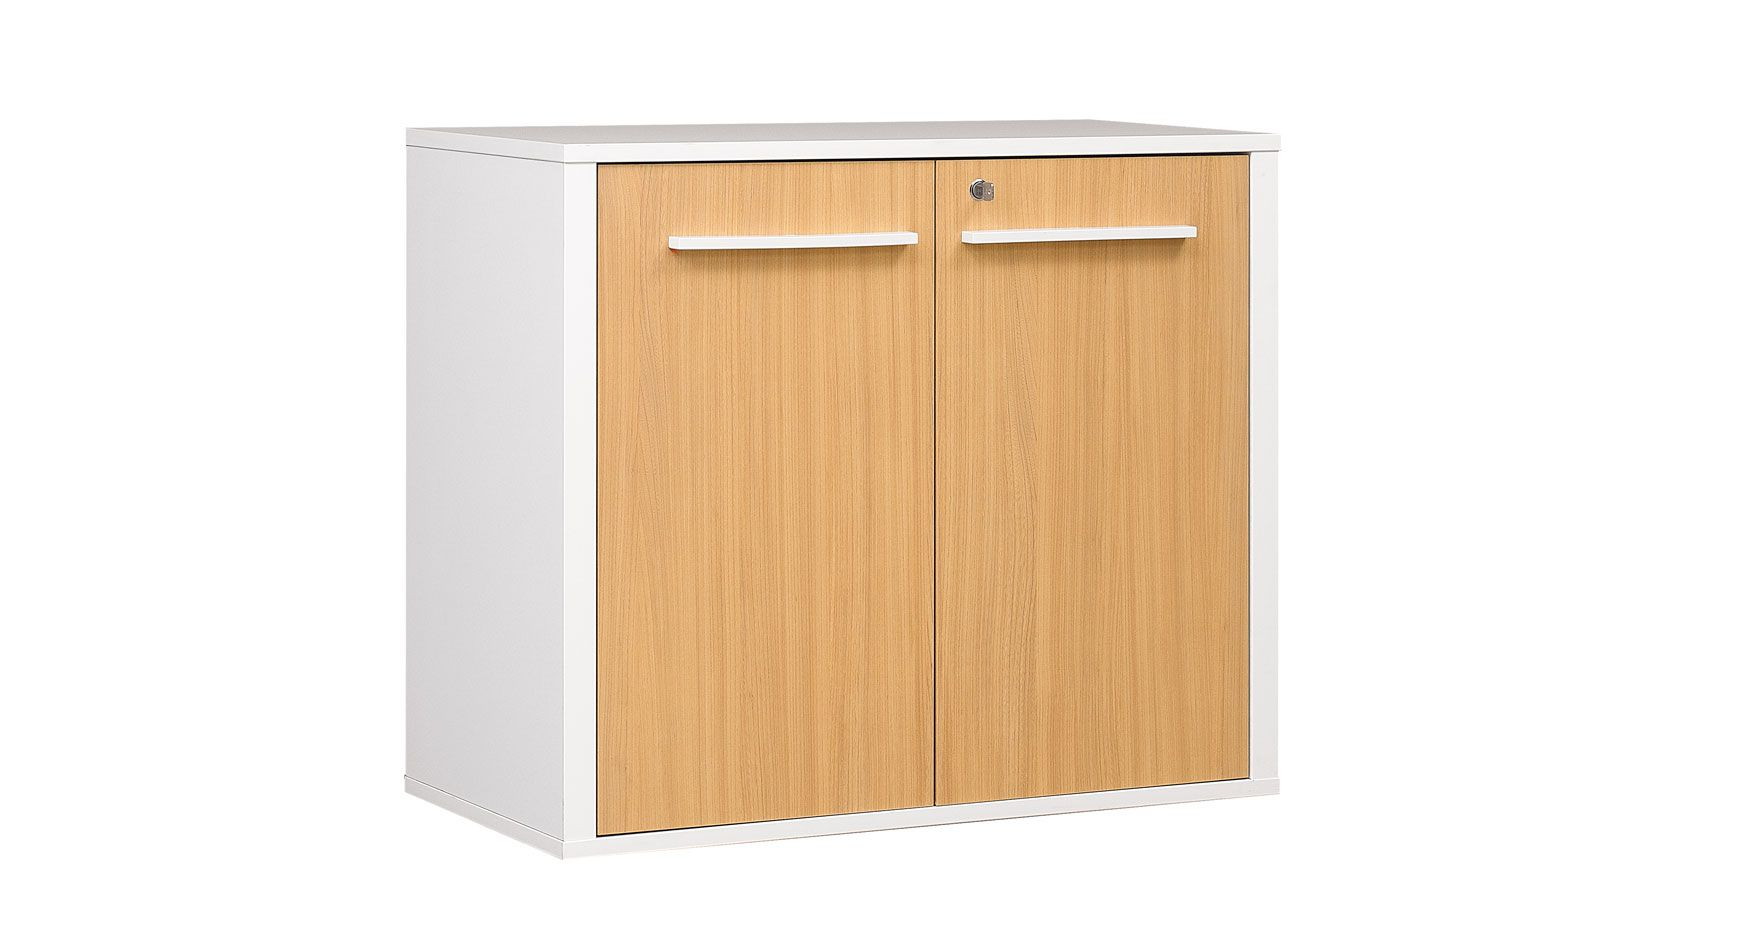 Khmer Furniture Low Carbinet Low 2 door storage units in Cambodia